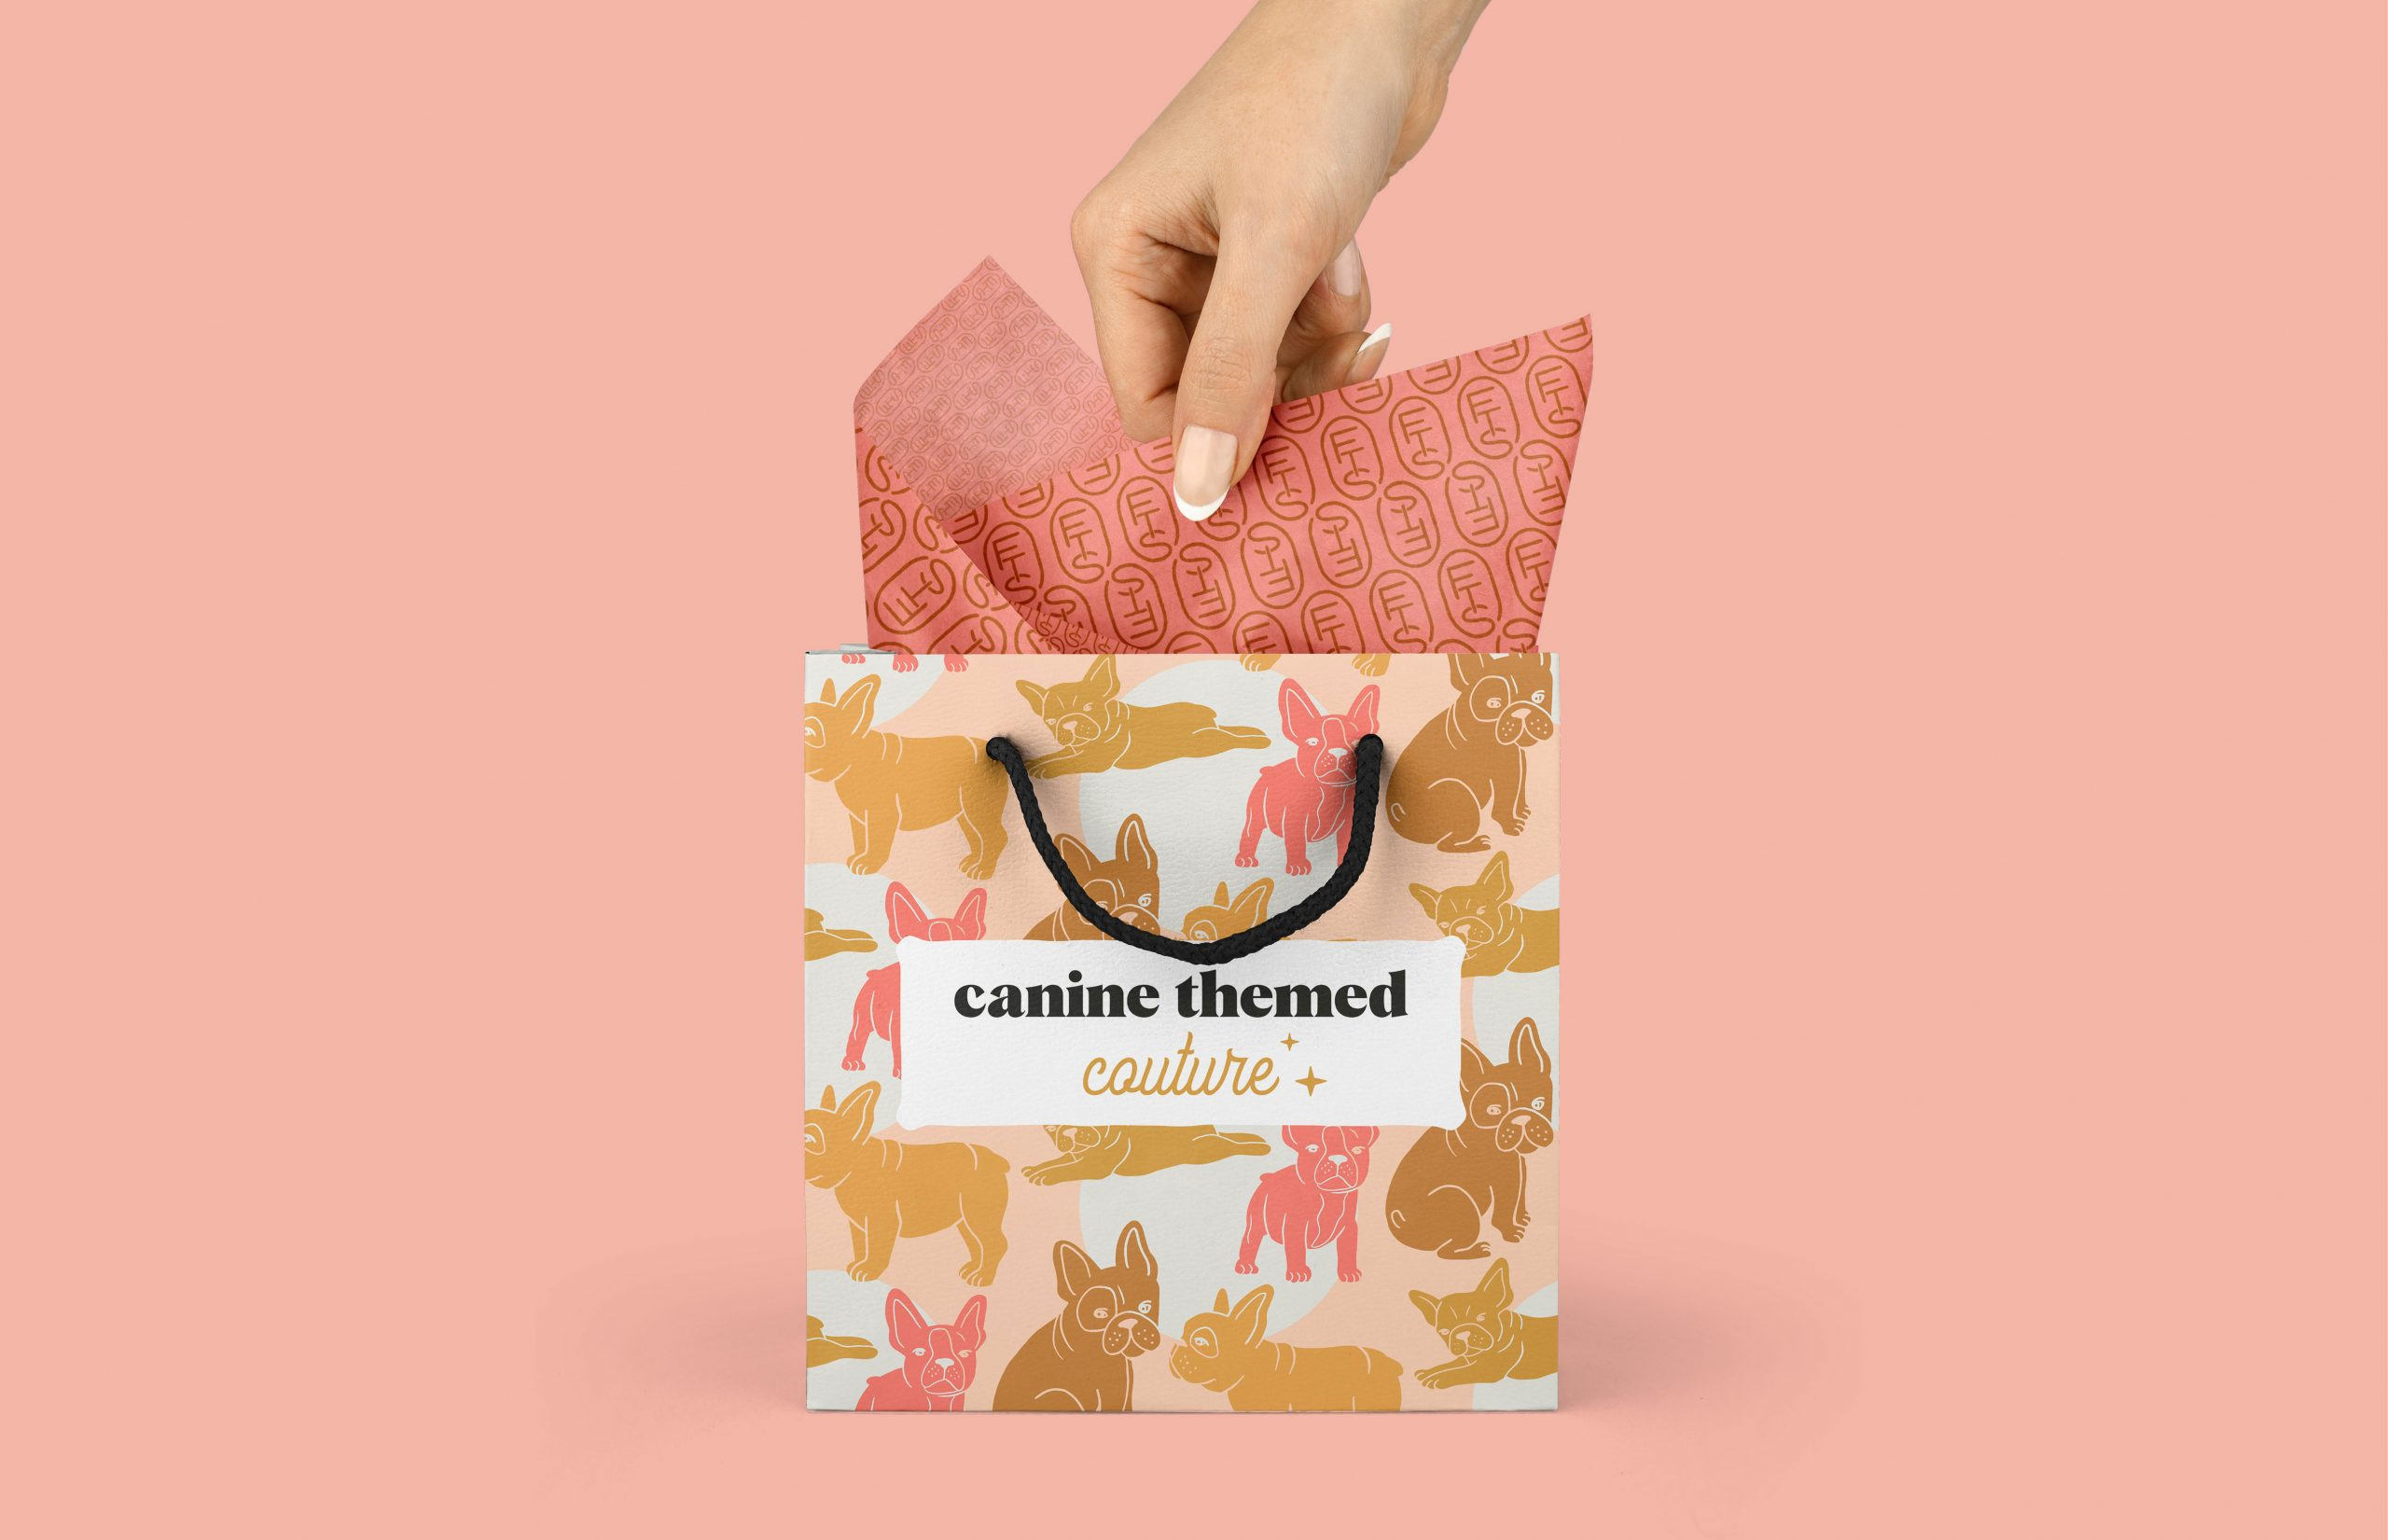 woman hand reaching into a bag titled canine themed couture